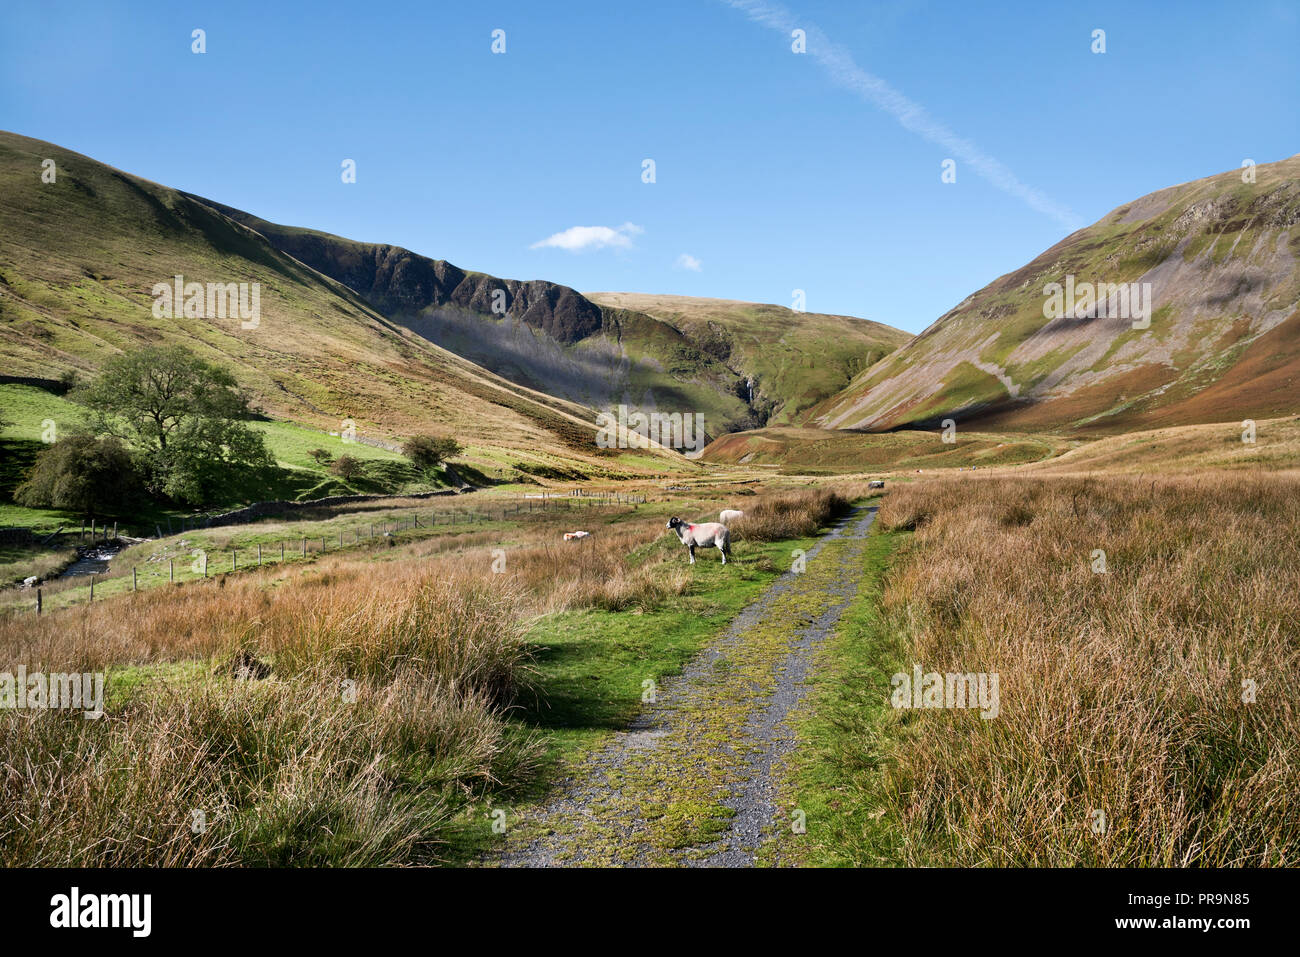 The Howgill Fells rear Sedbergh, Yorkshire Dales National Park, UK. Cautley Spout waterfall is seen in the distance (centre). - Stock Image